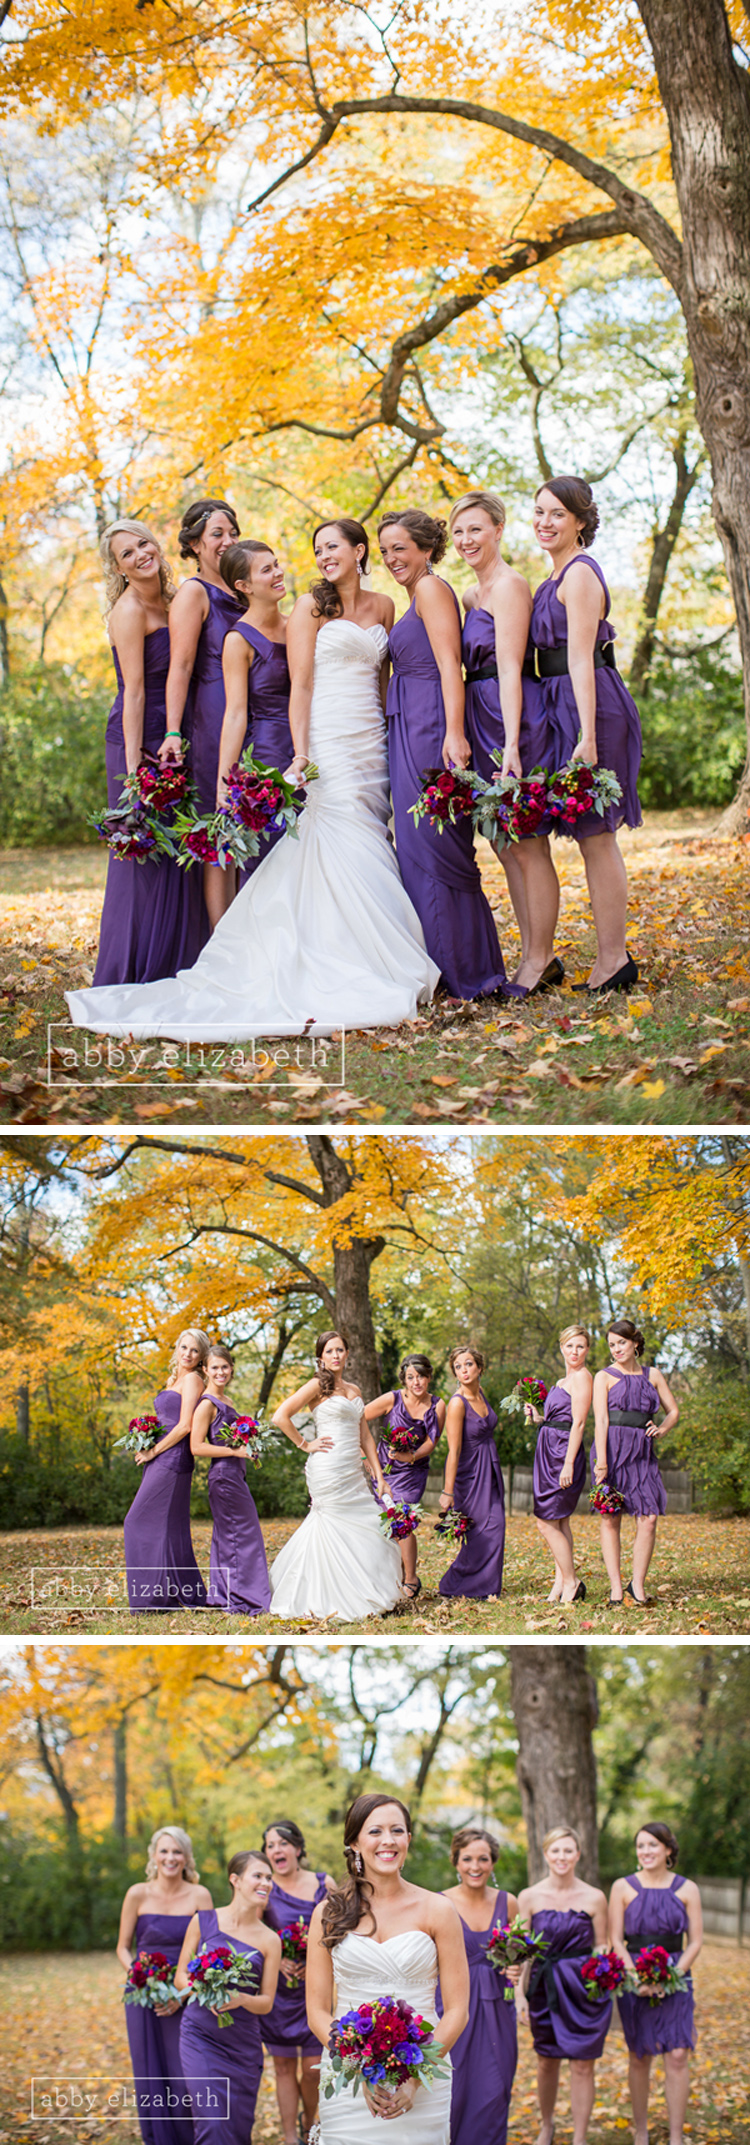 Fall_Wedding_Knoxville_TN_14.jpg